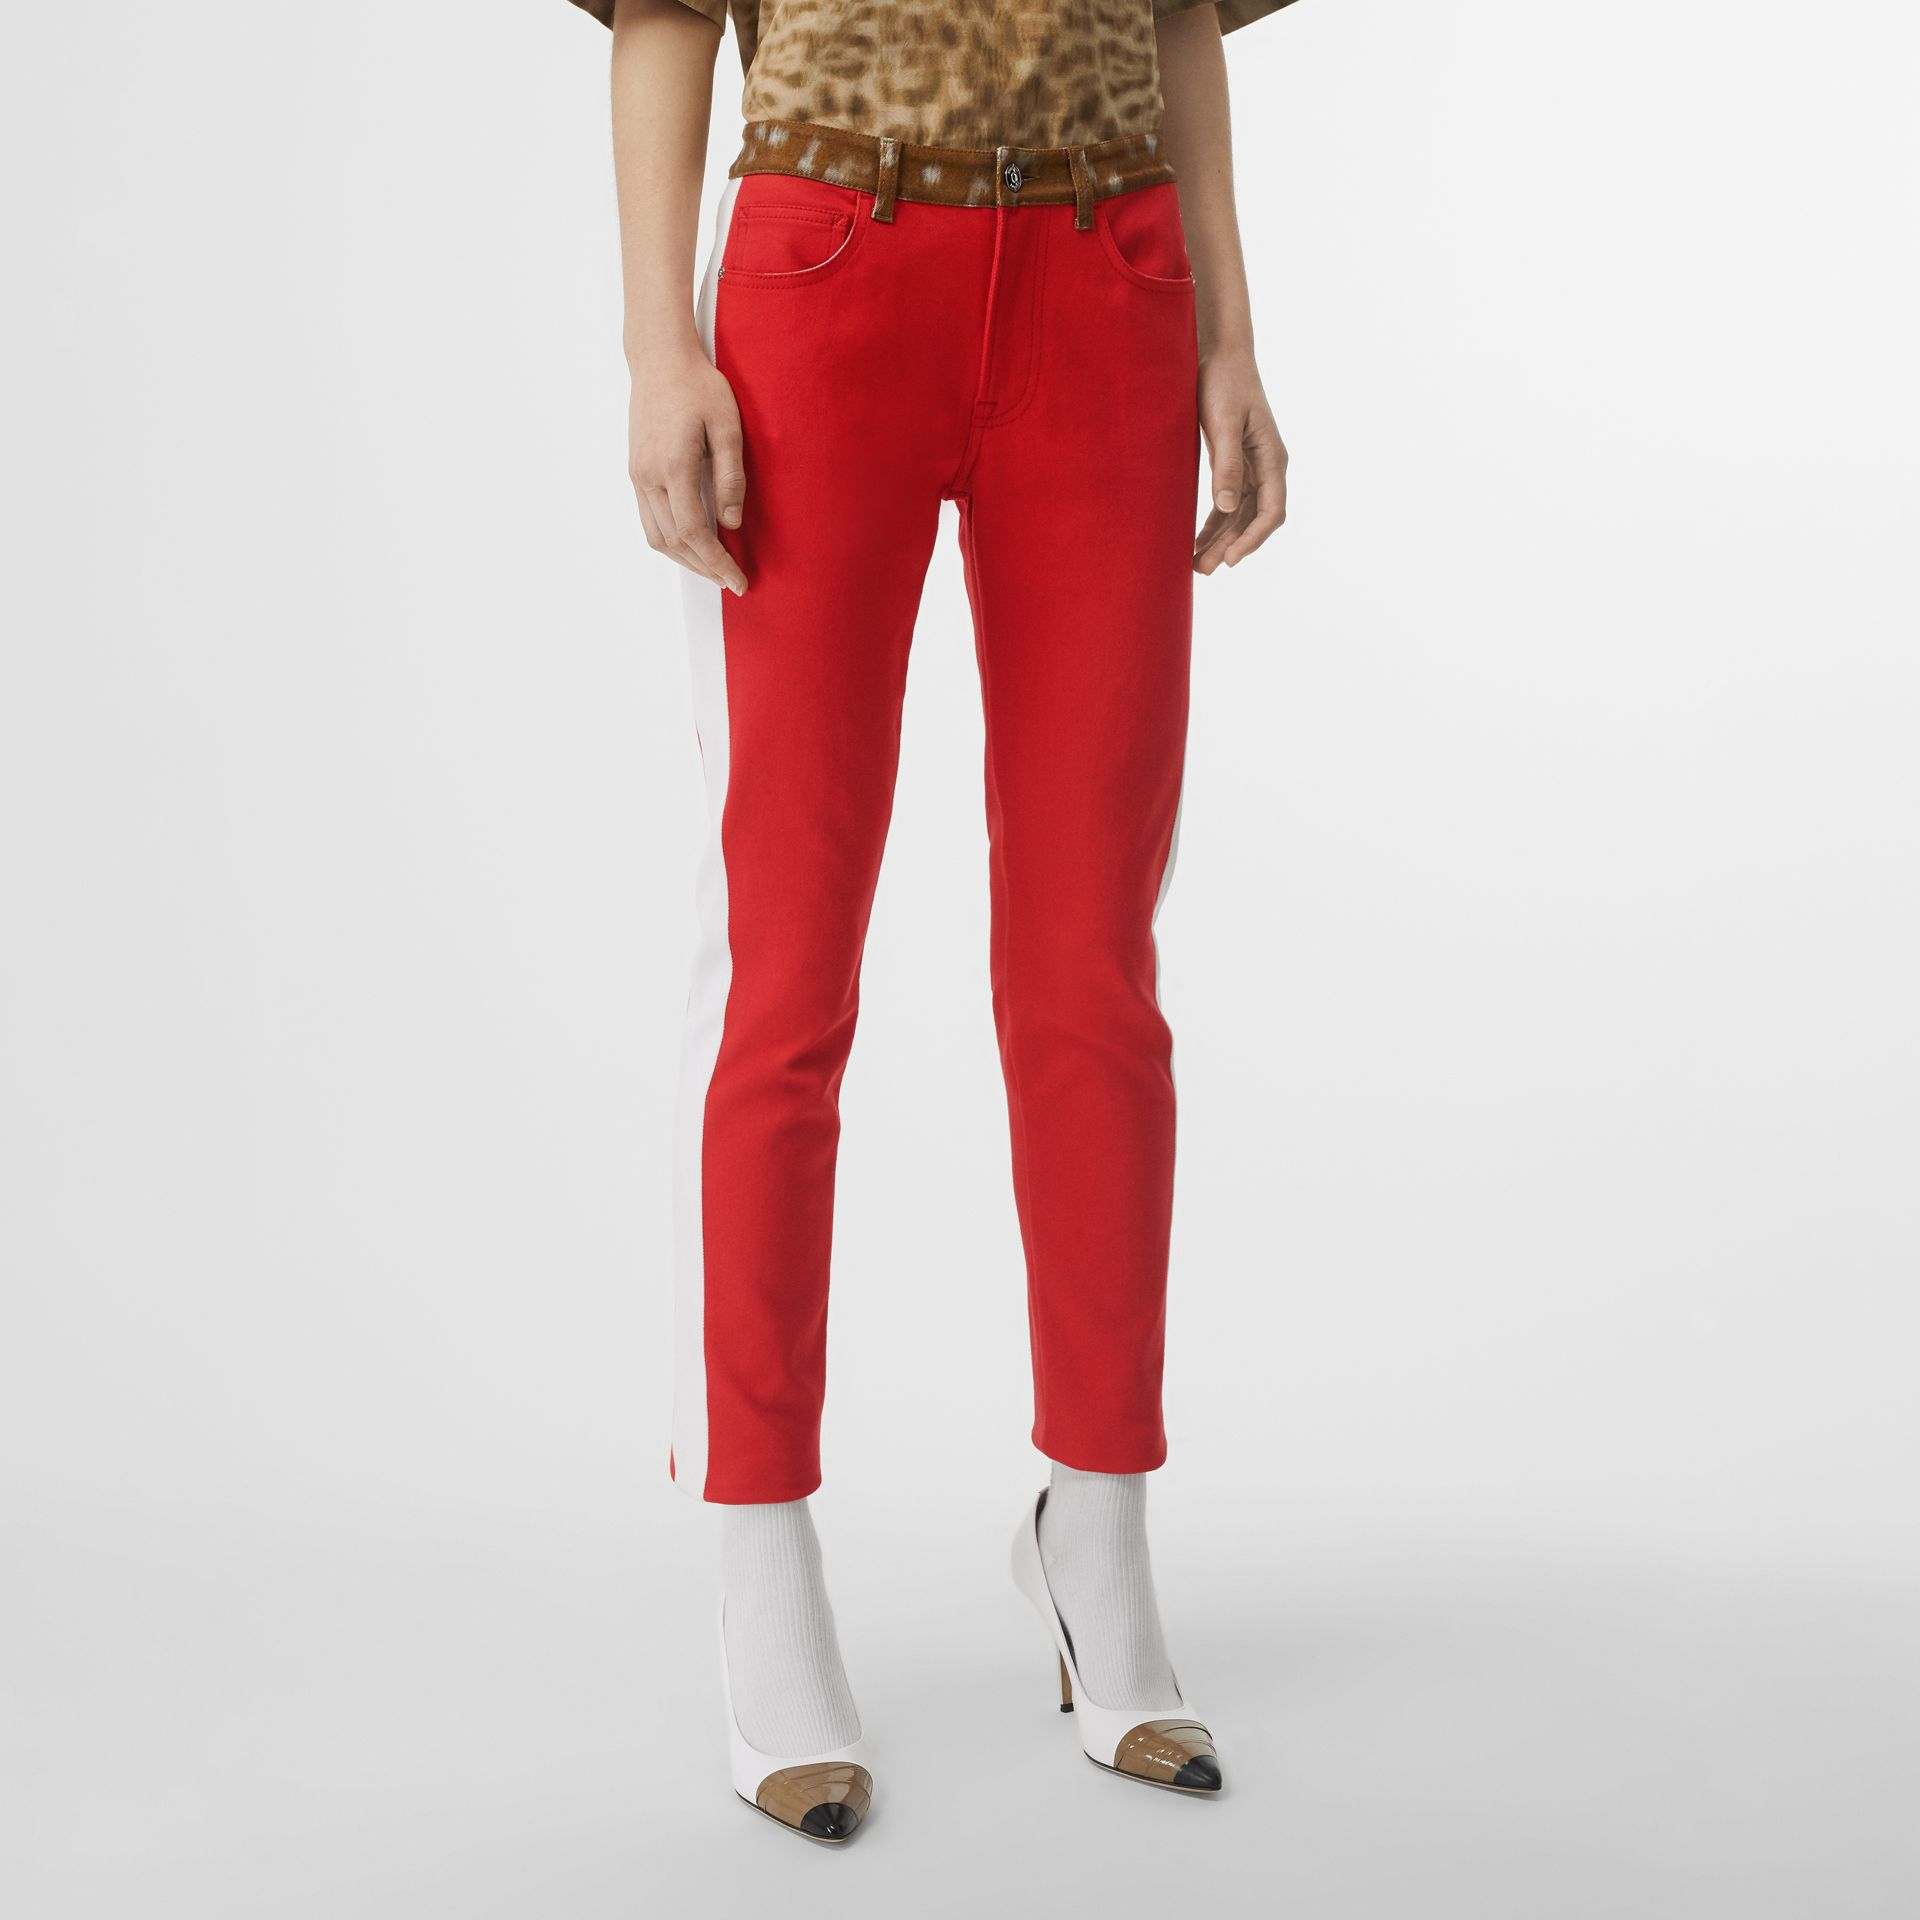 Straight Fit Deer Print Trim Japanese Denim Jeans in Bright Red - Women | Burberry United States - gallery image 4